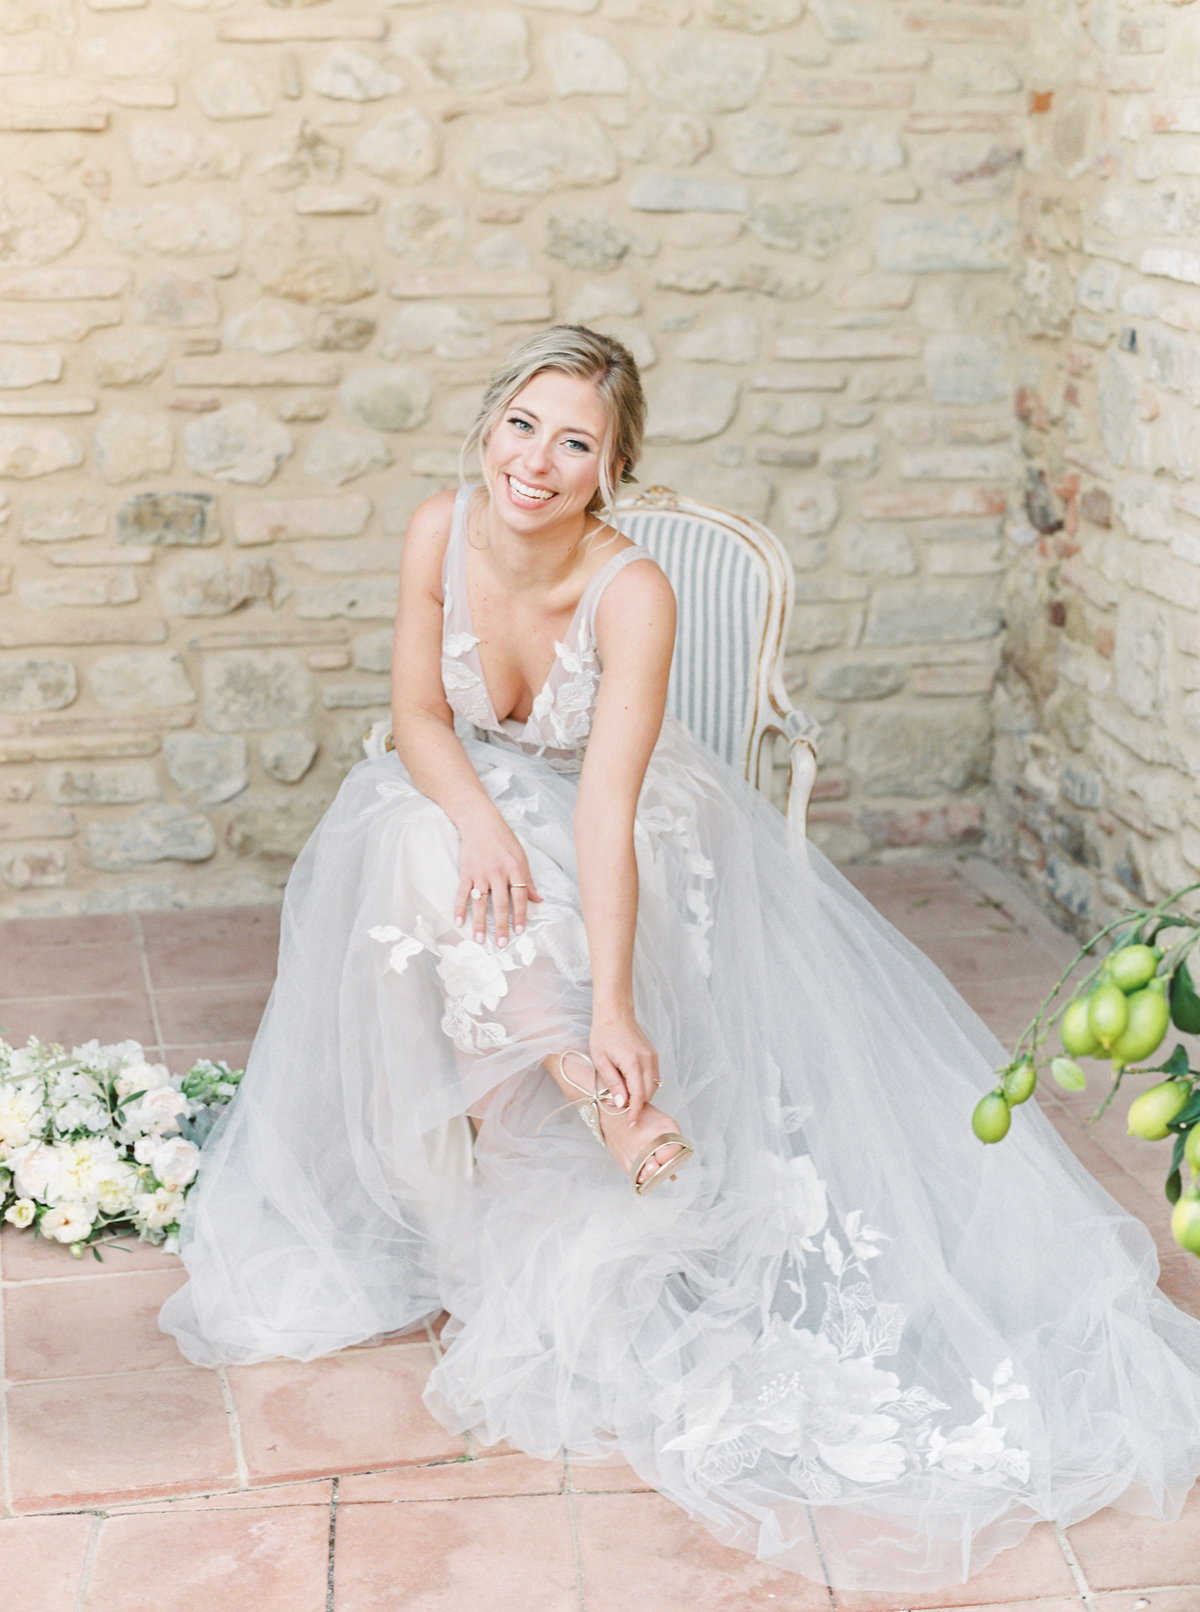 Tuscany Wedding Erica Nick - Lauren Fair Photography078